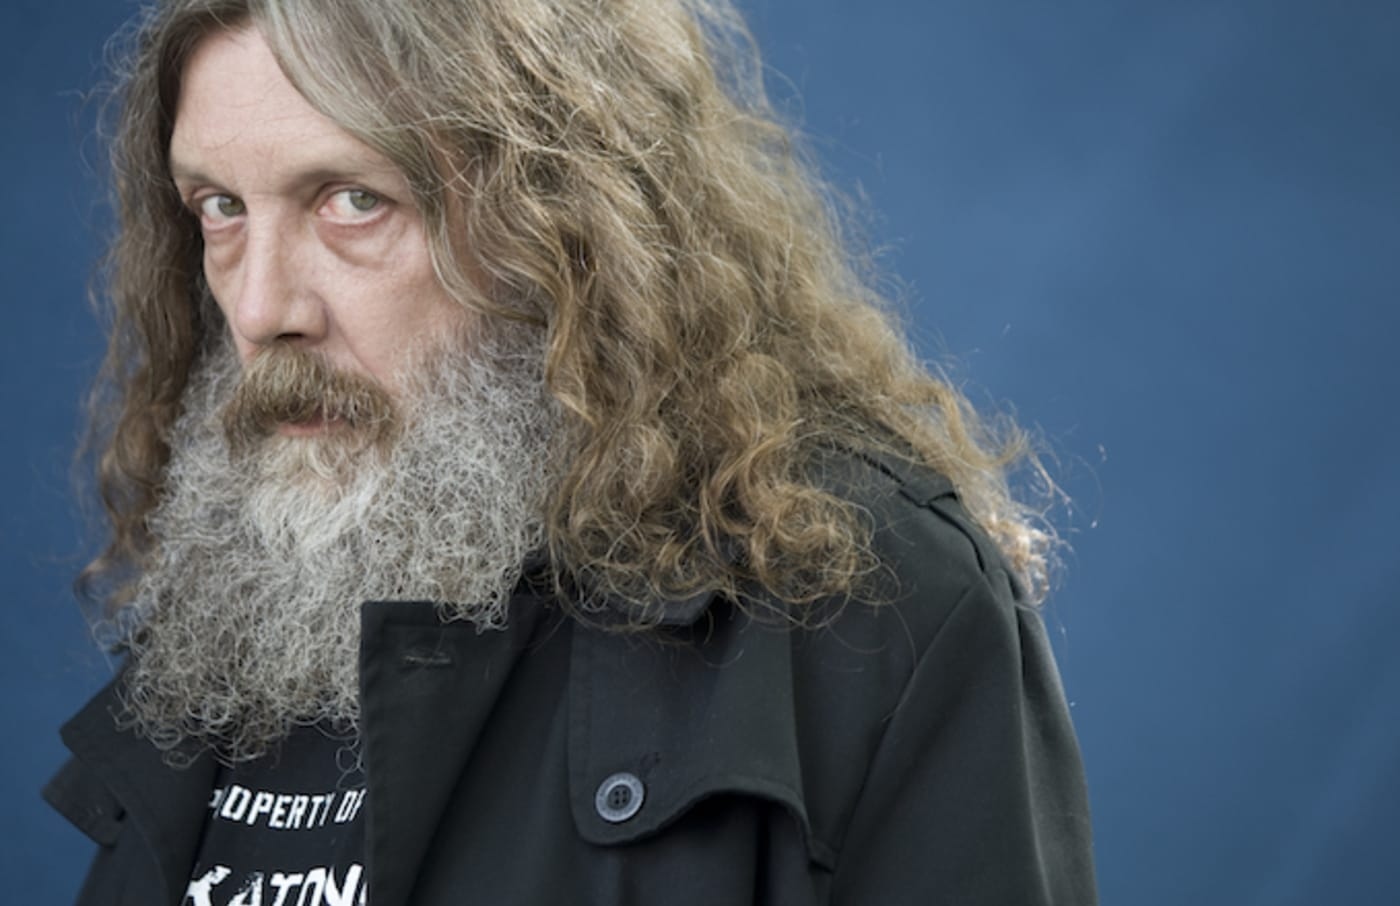 Alan Moore pictured at the Edinburgh International Book Festival.